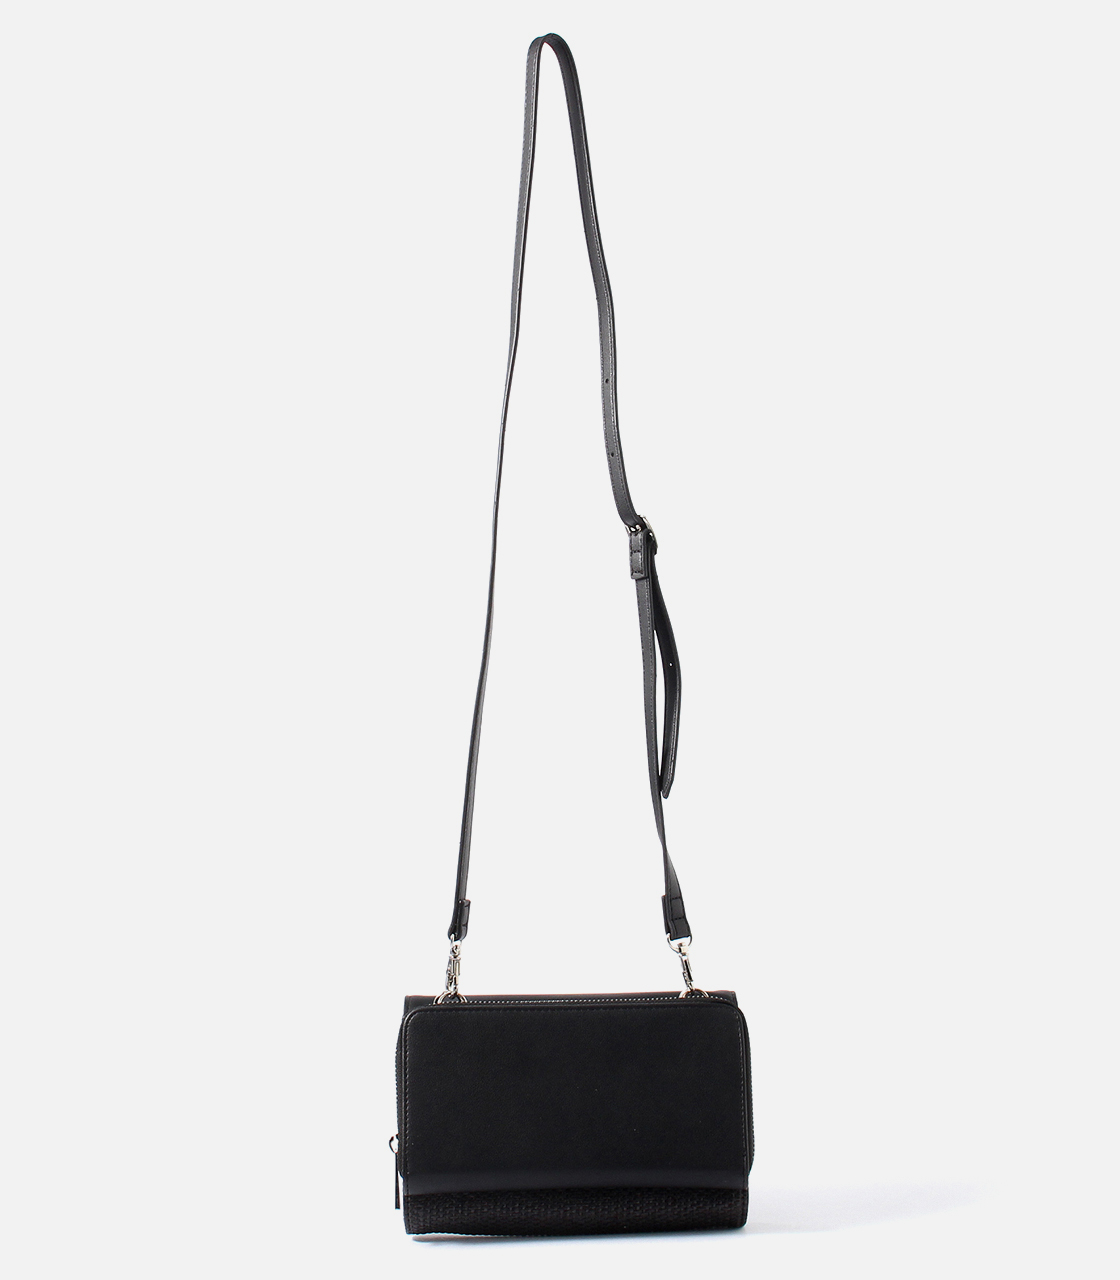 【AZUL BY MOUSSY】PAPER WALLET SHOULDER BAG 詳細画像 BLK 2